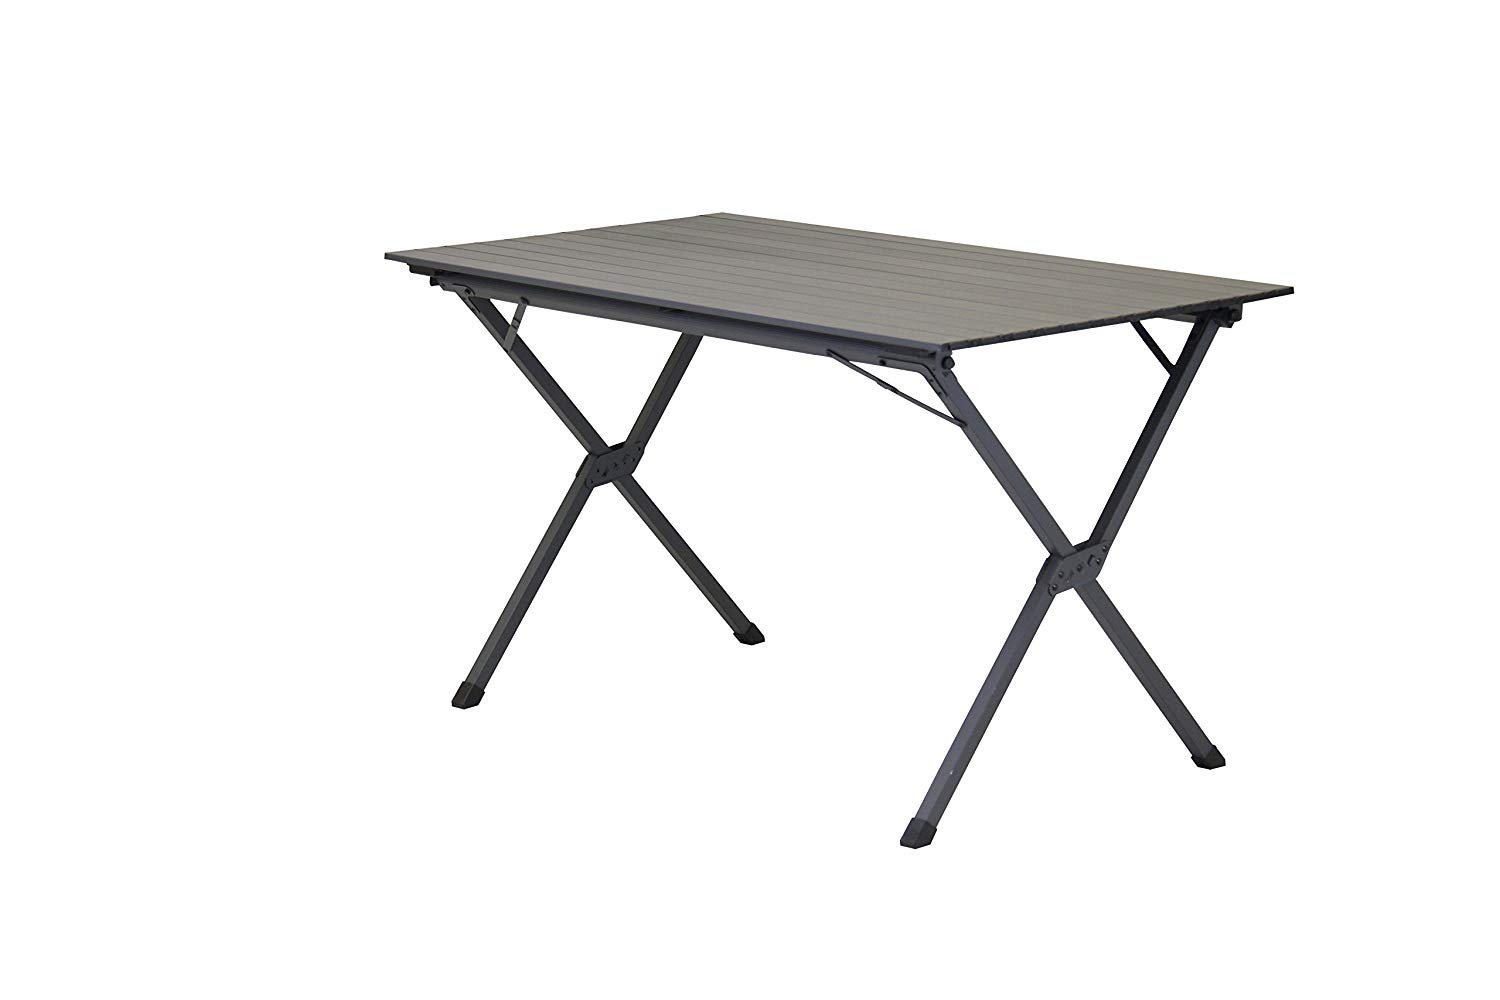 Portal Outdoor Hawaii Slatted Lightweight Aluminium Portable Camping Table in Graphite Grey – 30kg Maximum Load with Storage Bag, Seats up to 6 People PT-TB-HAWAII